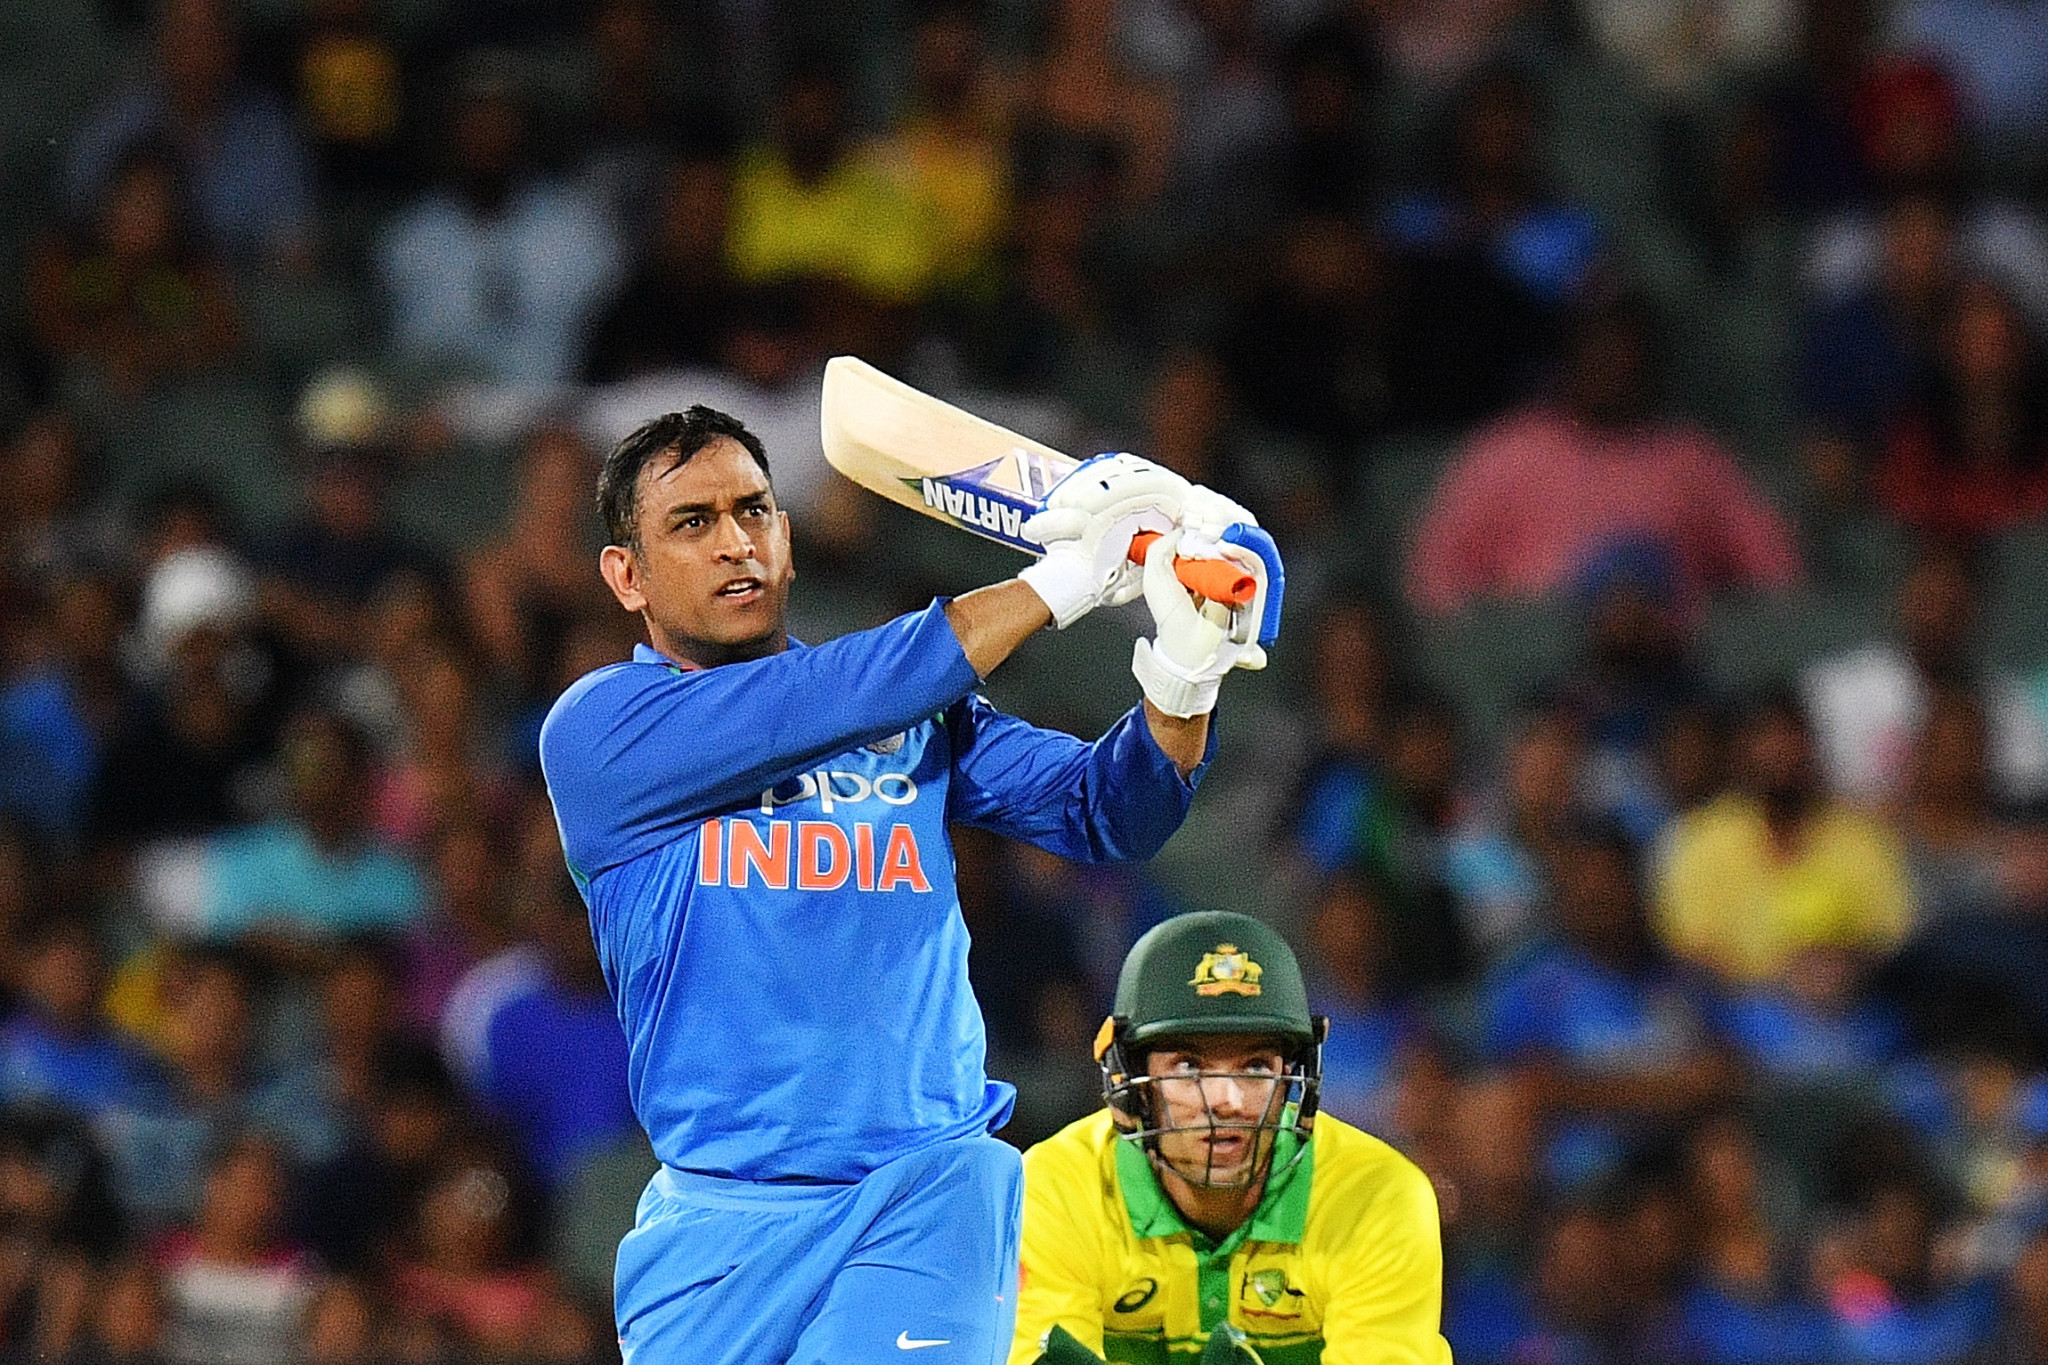 India legend and World Cup winner Dhoni retires from international cricket